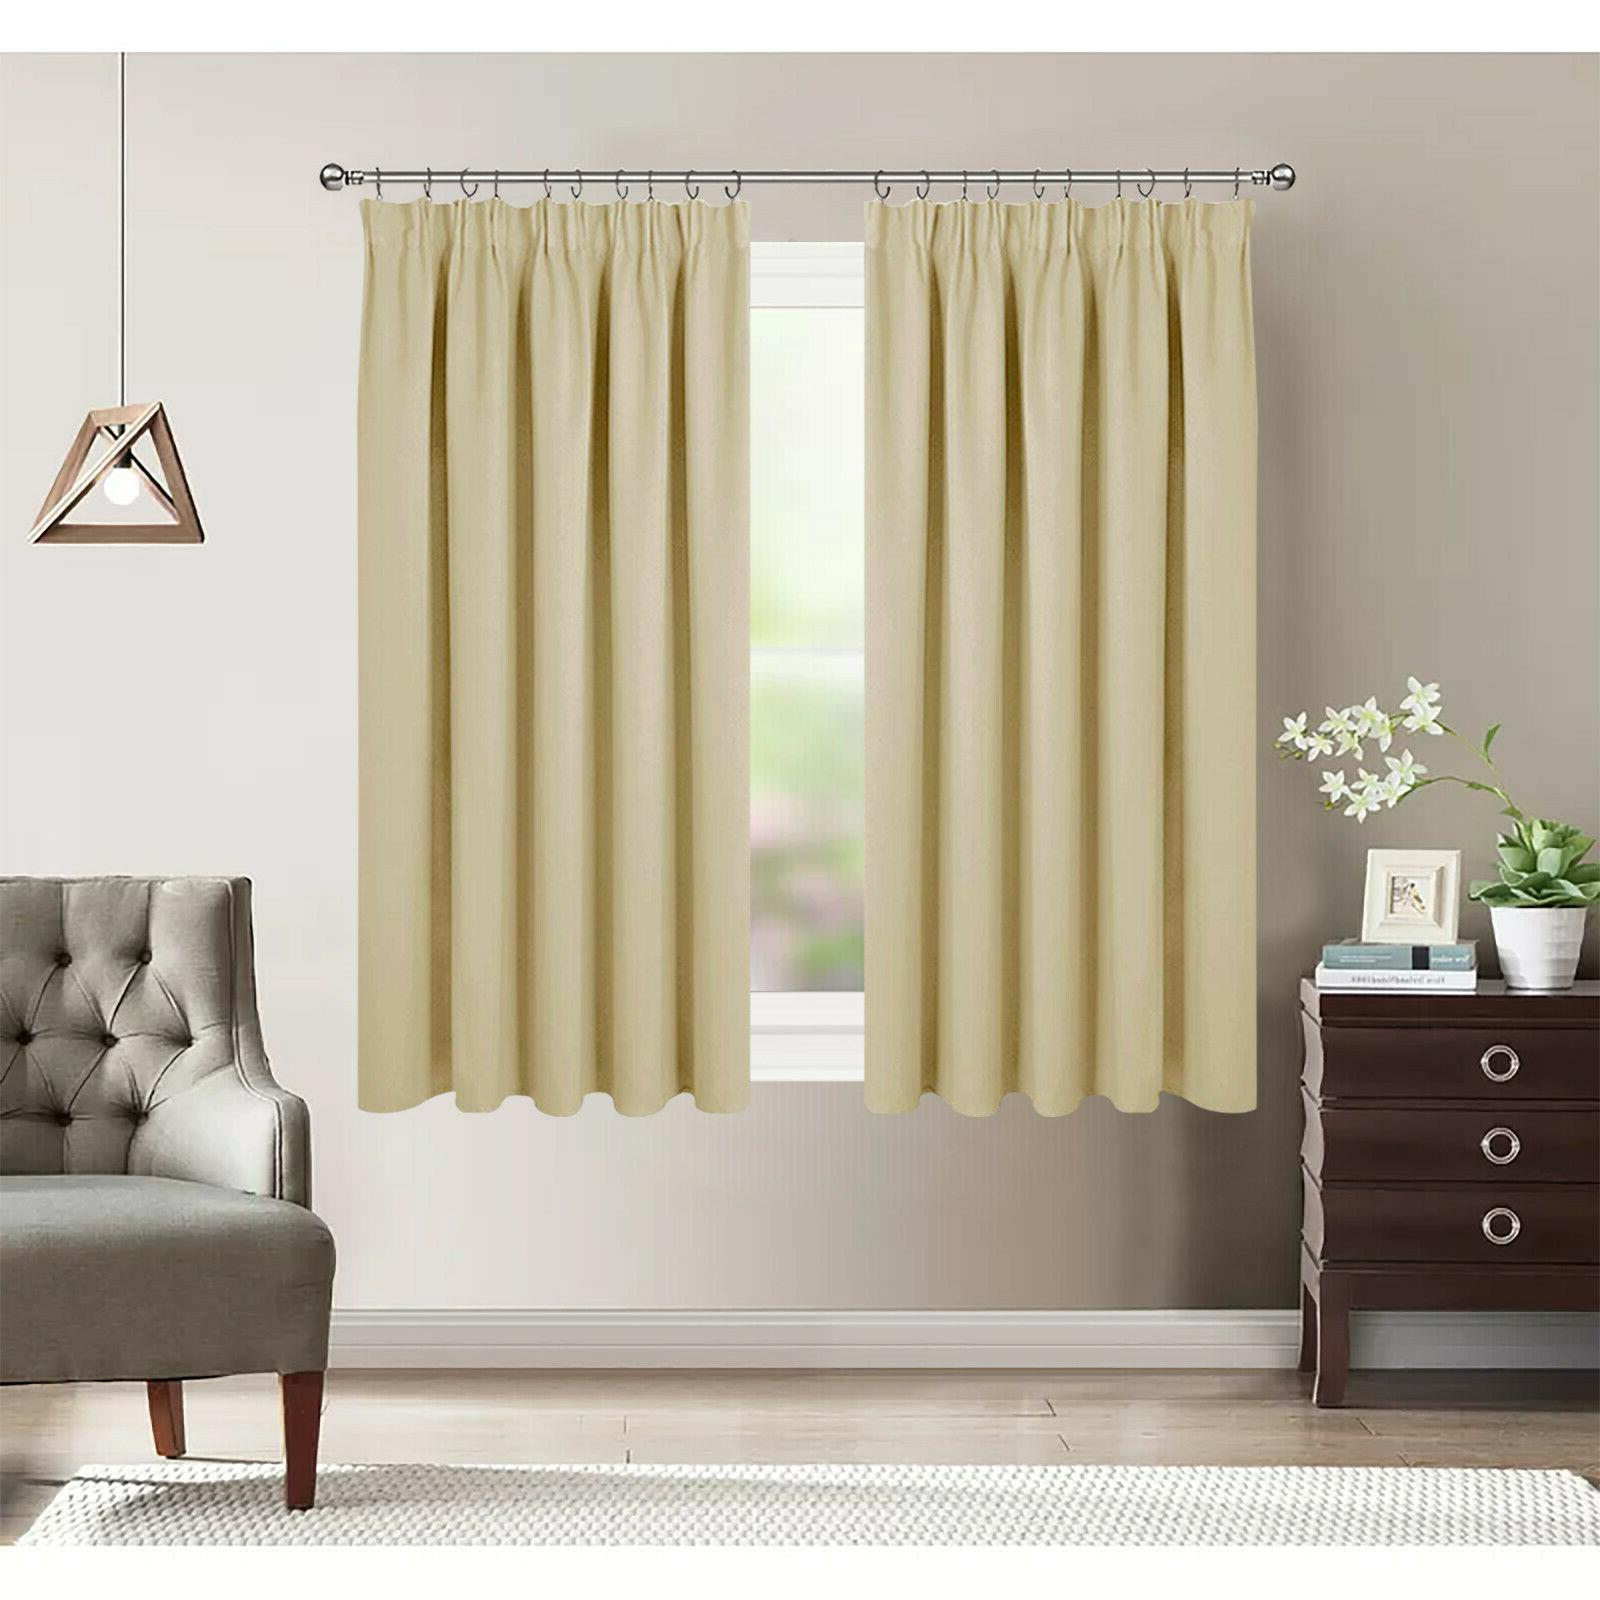 Thermal Insulated Window Curtain for Kitchen